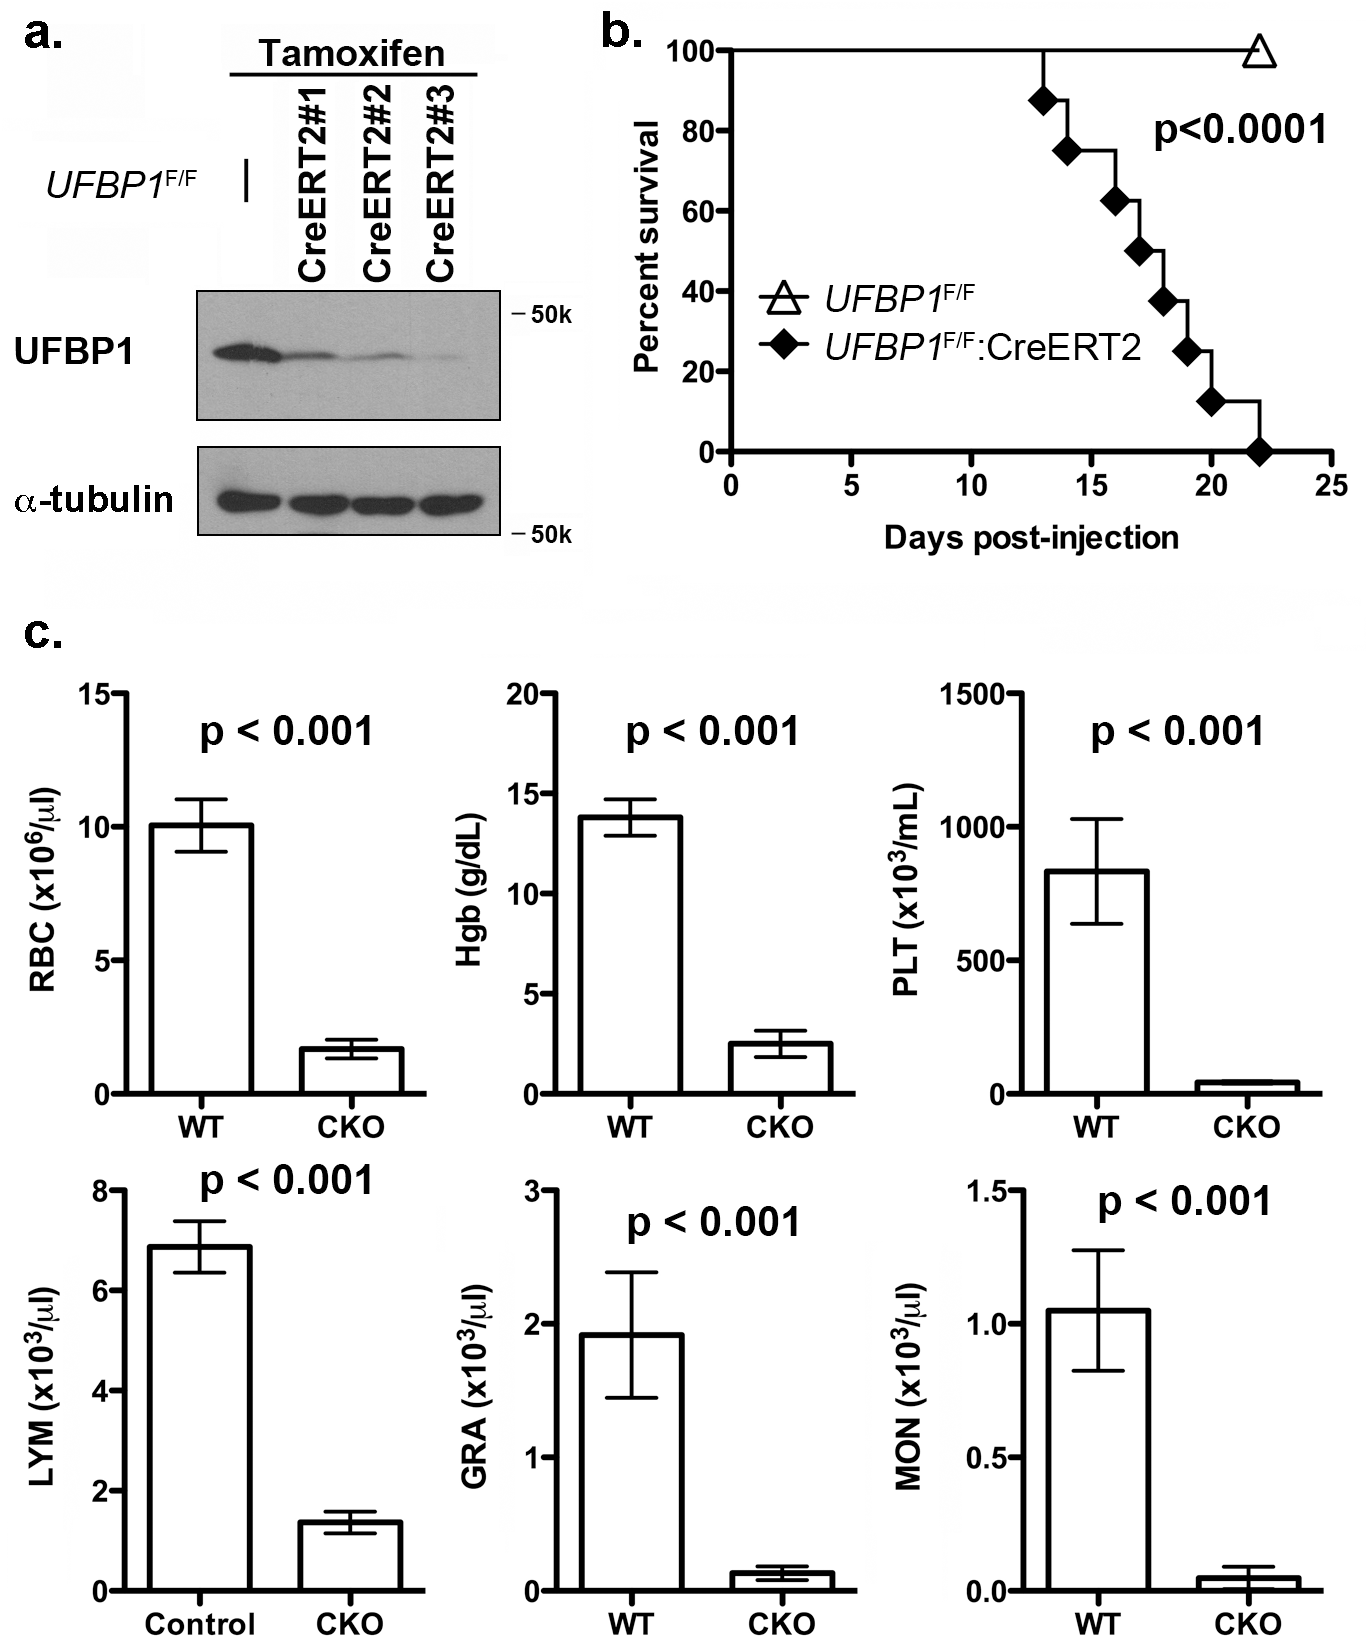 Loss of UFBP1 in adult mice results in severe pancytopenia and animal death.